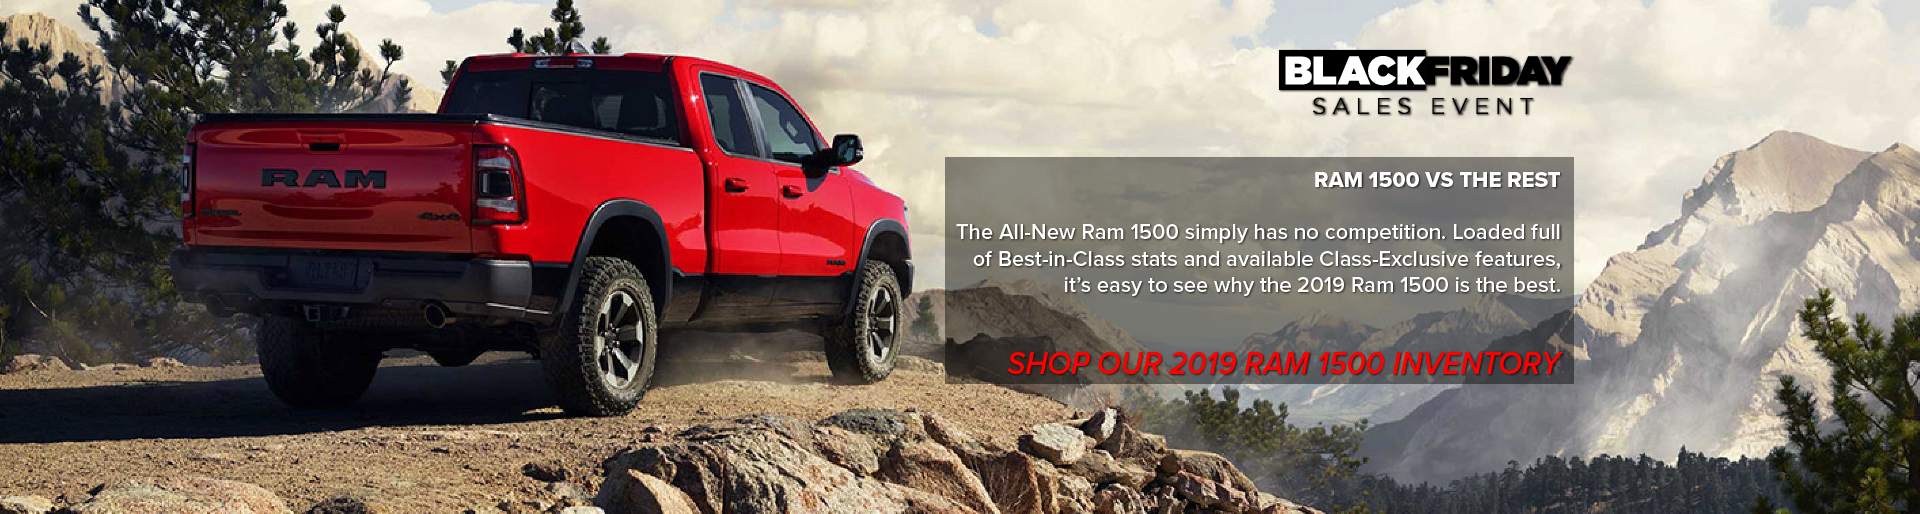 Tanner Motors RAM 1500 Black Friday Sales Event